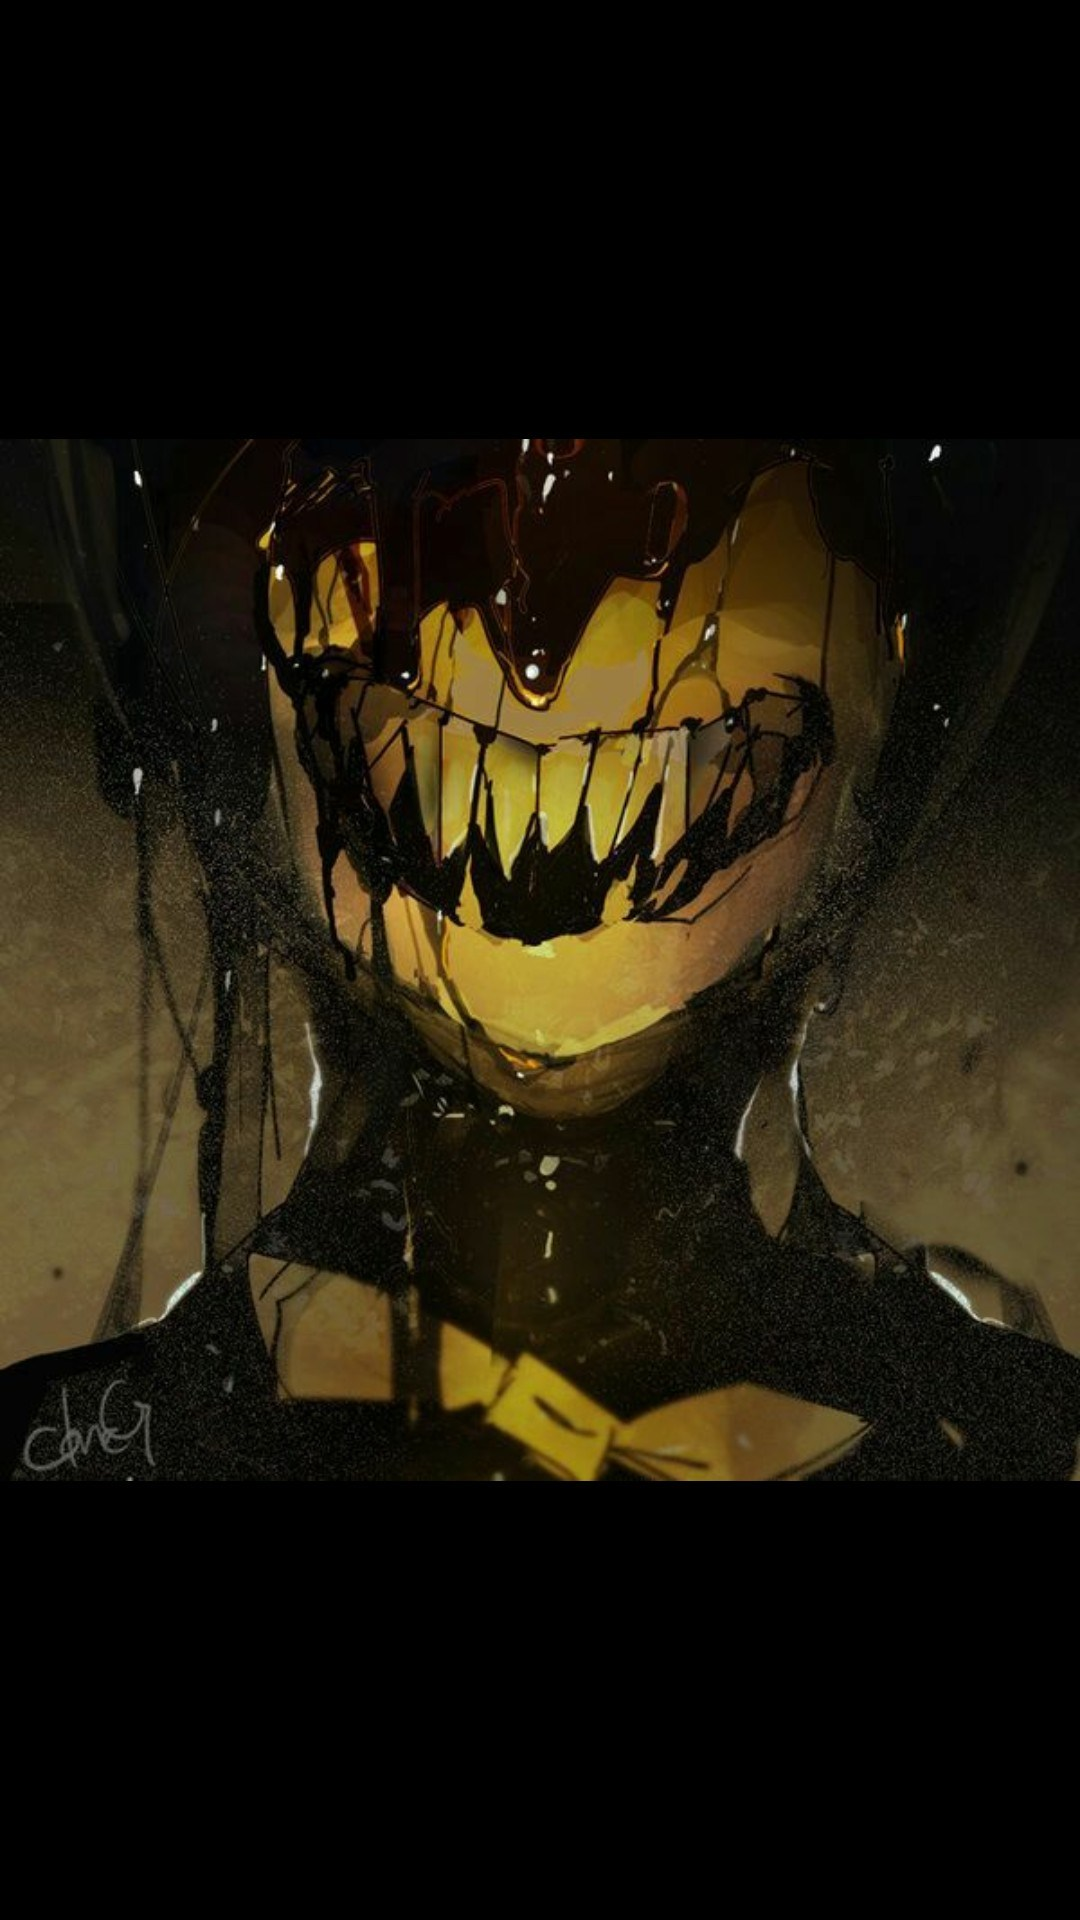 Bendy And The Ink Machine Demon 204643 Hd Wallpaper